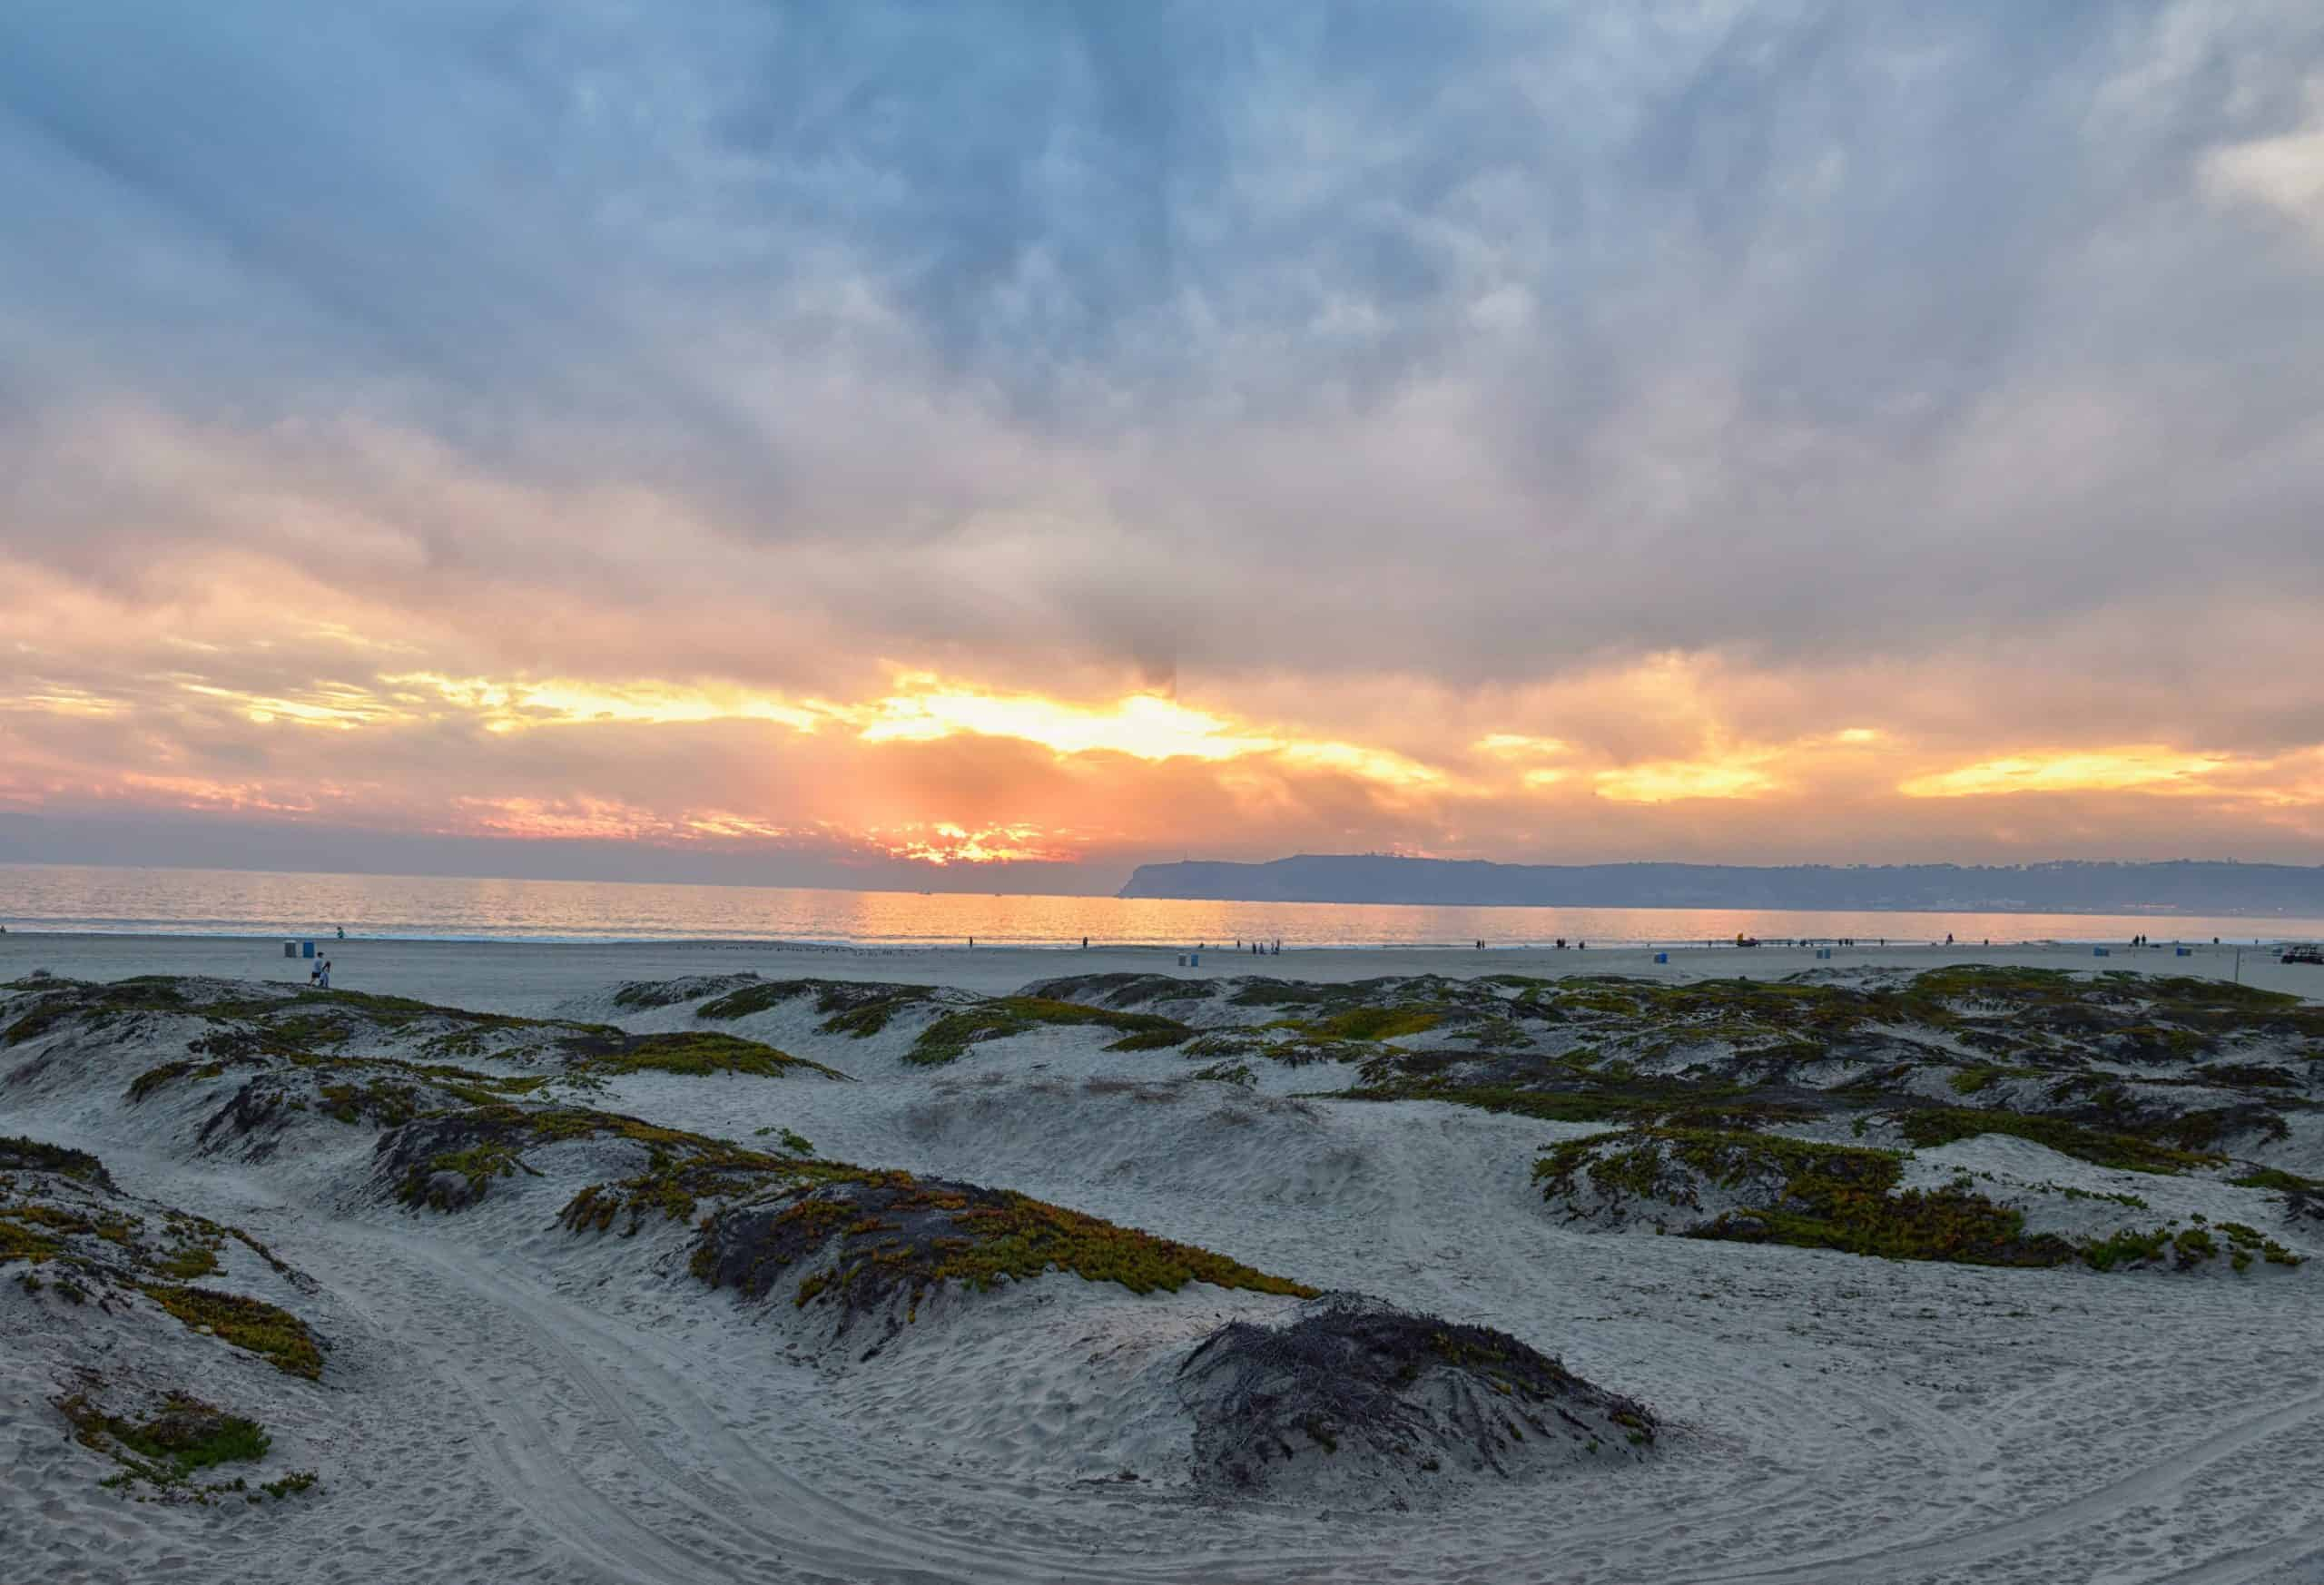 Sunset over the water and sand dunes at Coronado Beach.